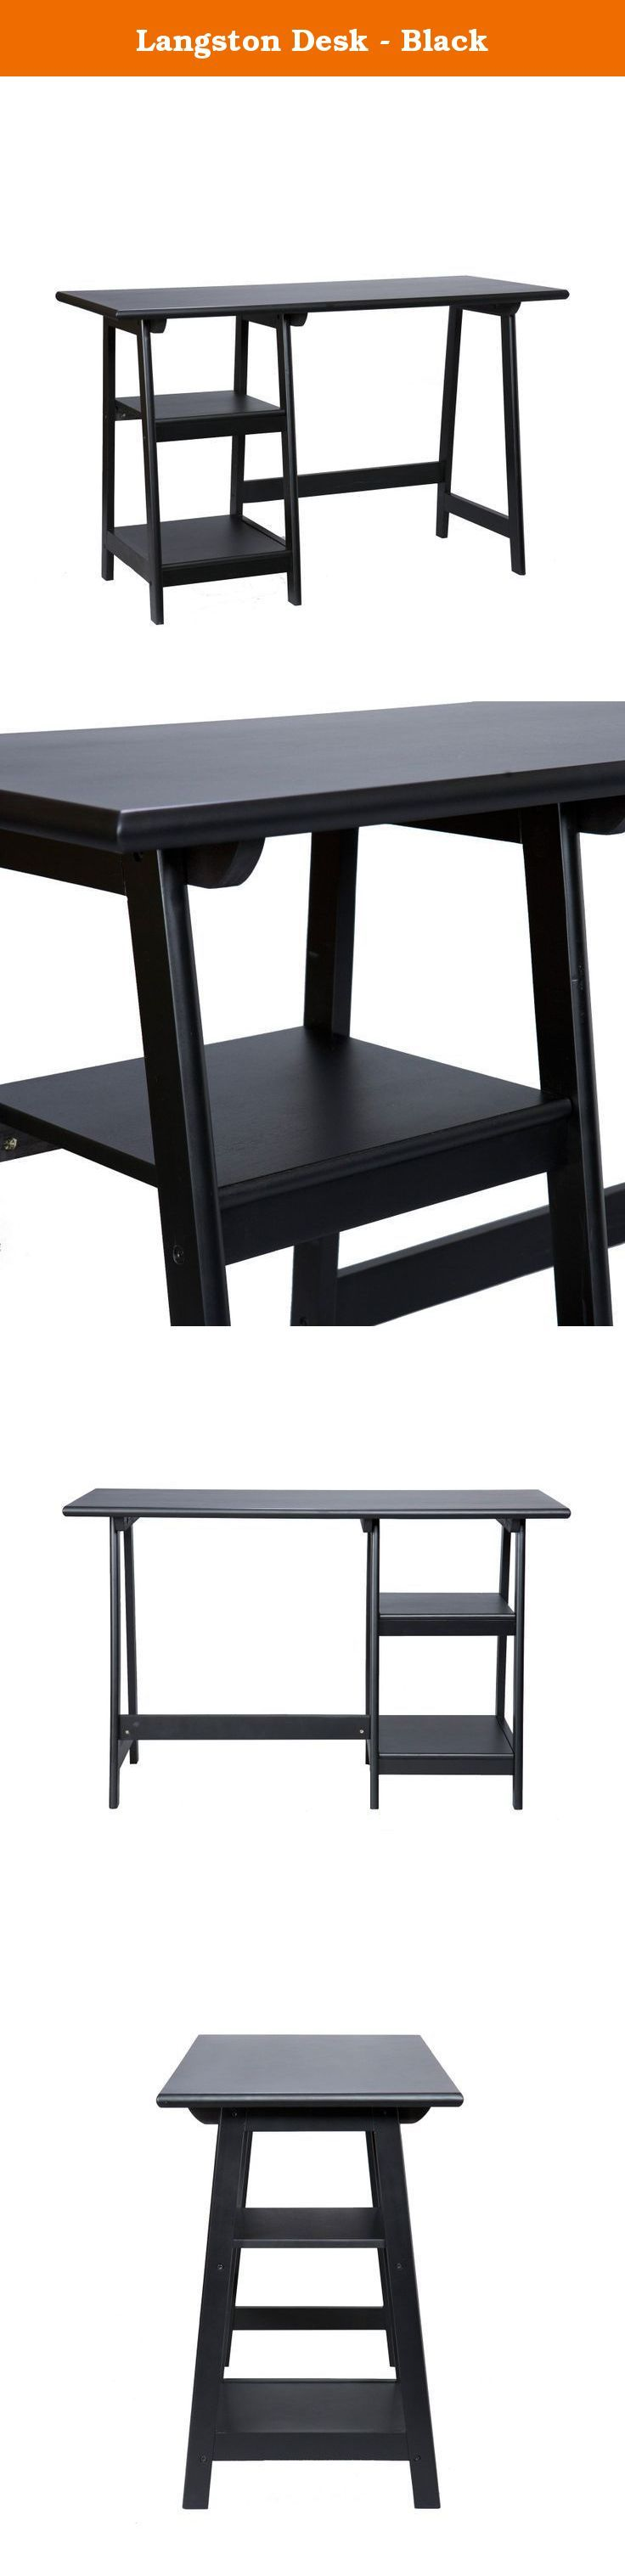 Langston Desk - Black. Crafted with simplicity in mind, this black sawhorse desk has a stylistic expression all its own. The broad work space features a comfortable, rounded edge. The frame is built with durable hardwood legs in an A-frame shape. The left side of this universal writing desk features two sturdy shelves to store accessories or display trinkets. In the home office or living room, this modern farmhouse styled desk is sure to get compliments. This wonderful piece also features…